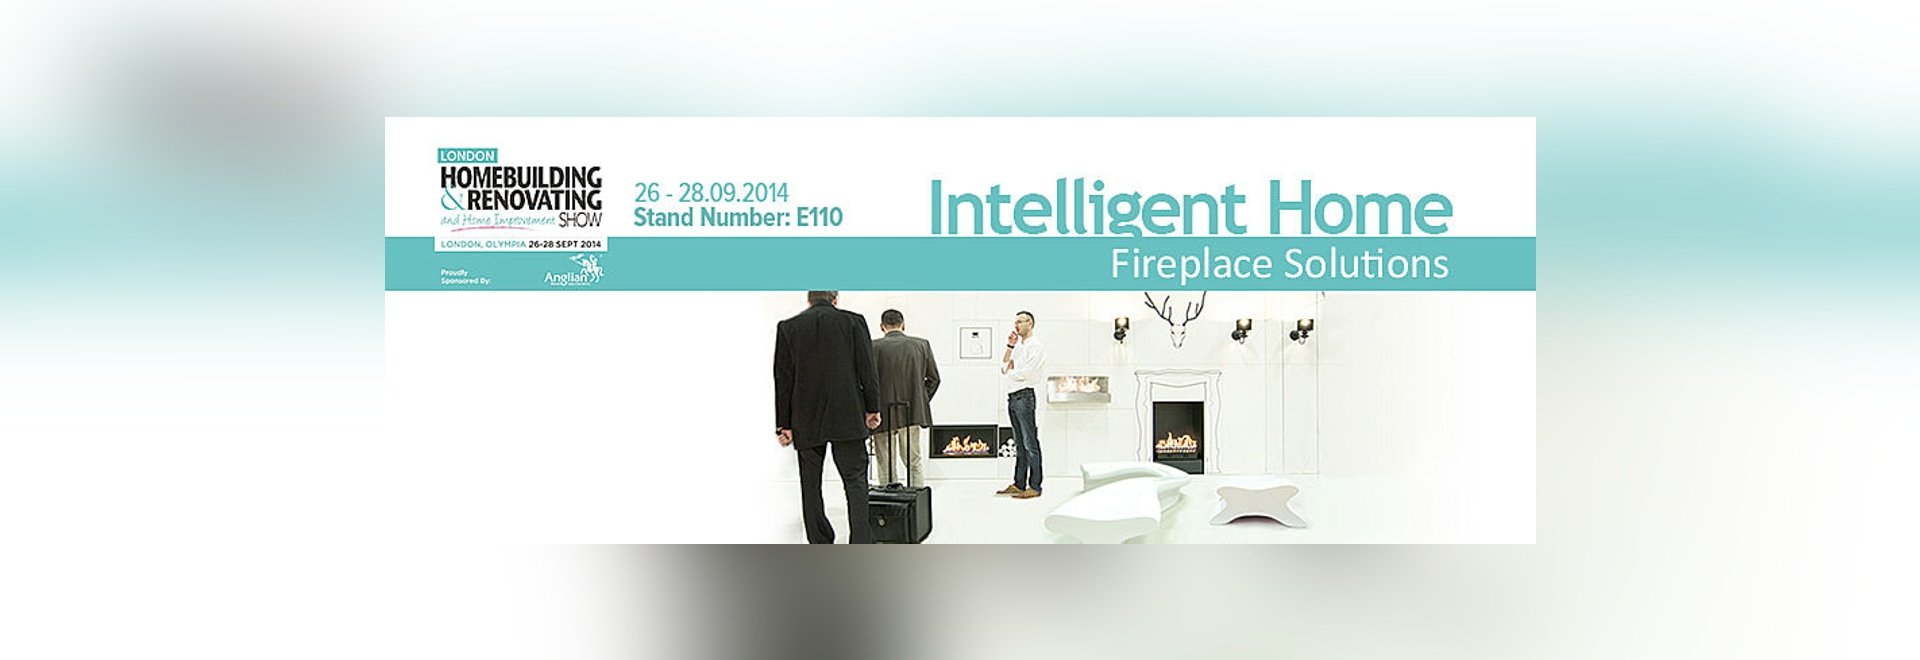 The Intelligent fire as the new vision for home improvement